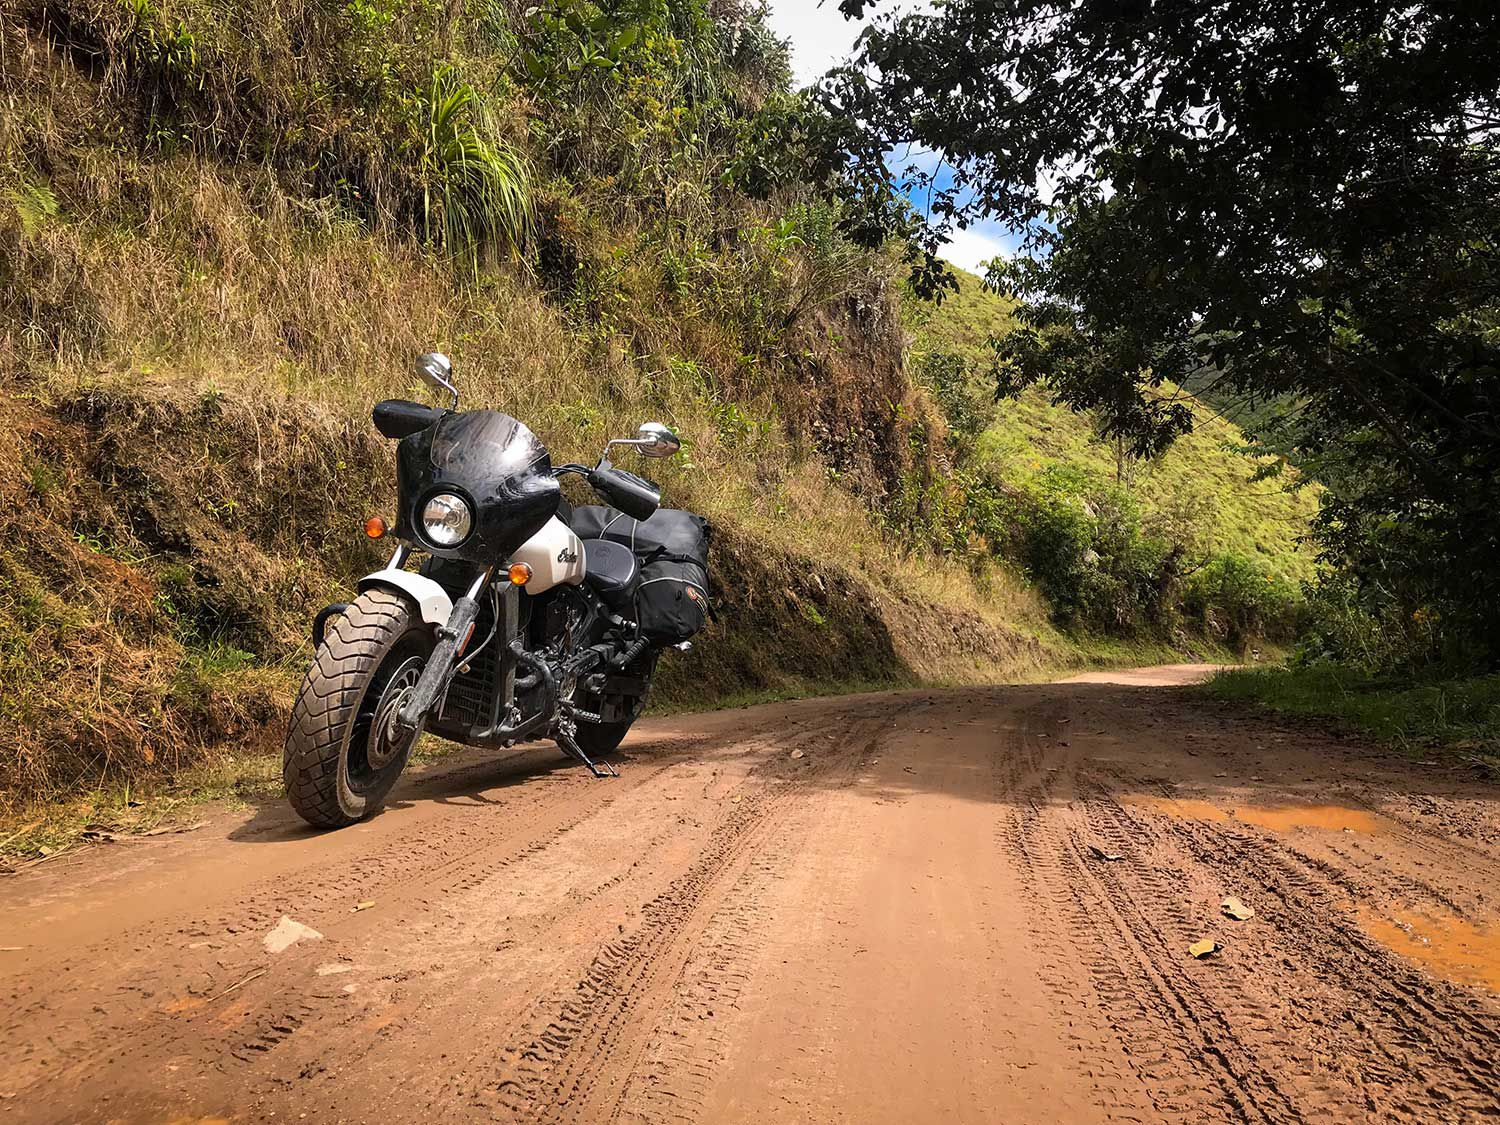 The challenges that come along with riding a bike like this on roads such as these is a part of the adventure.